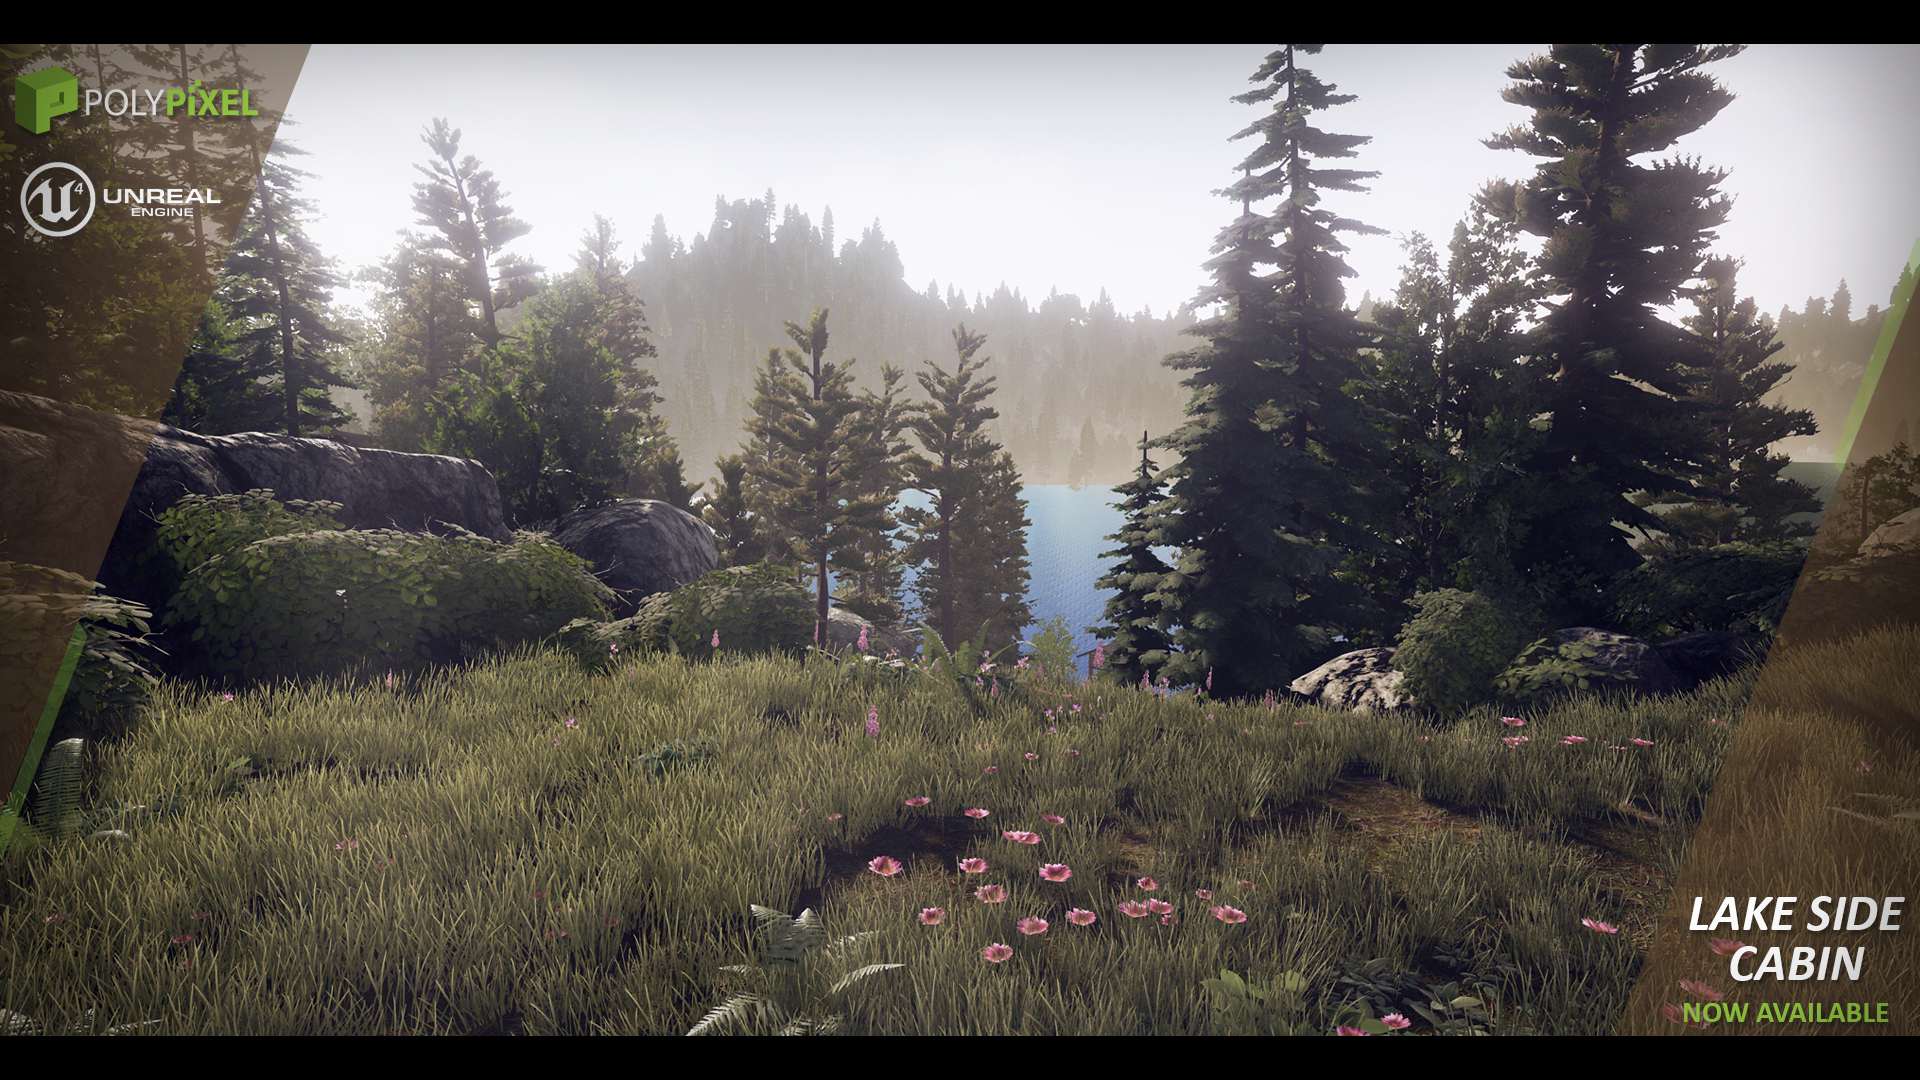 Lake Side Cabin by PolyPixel